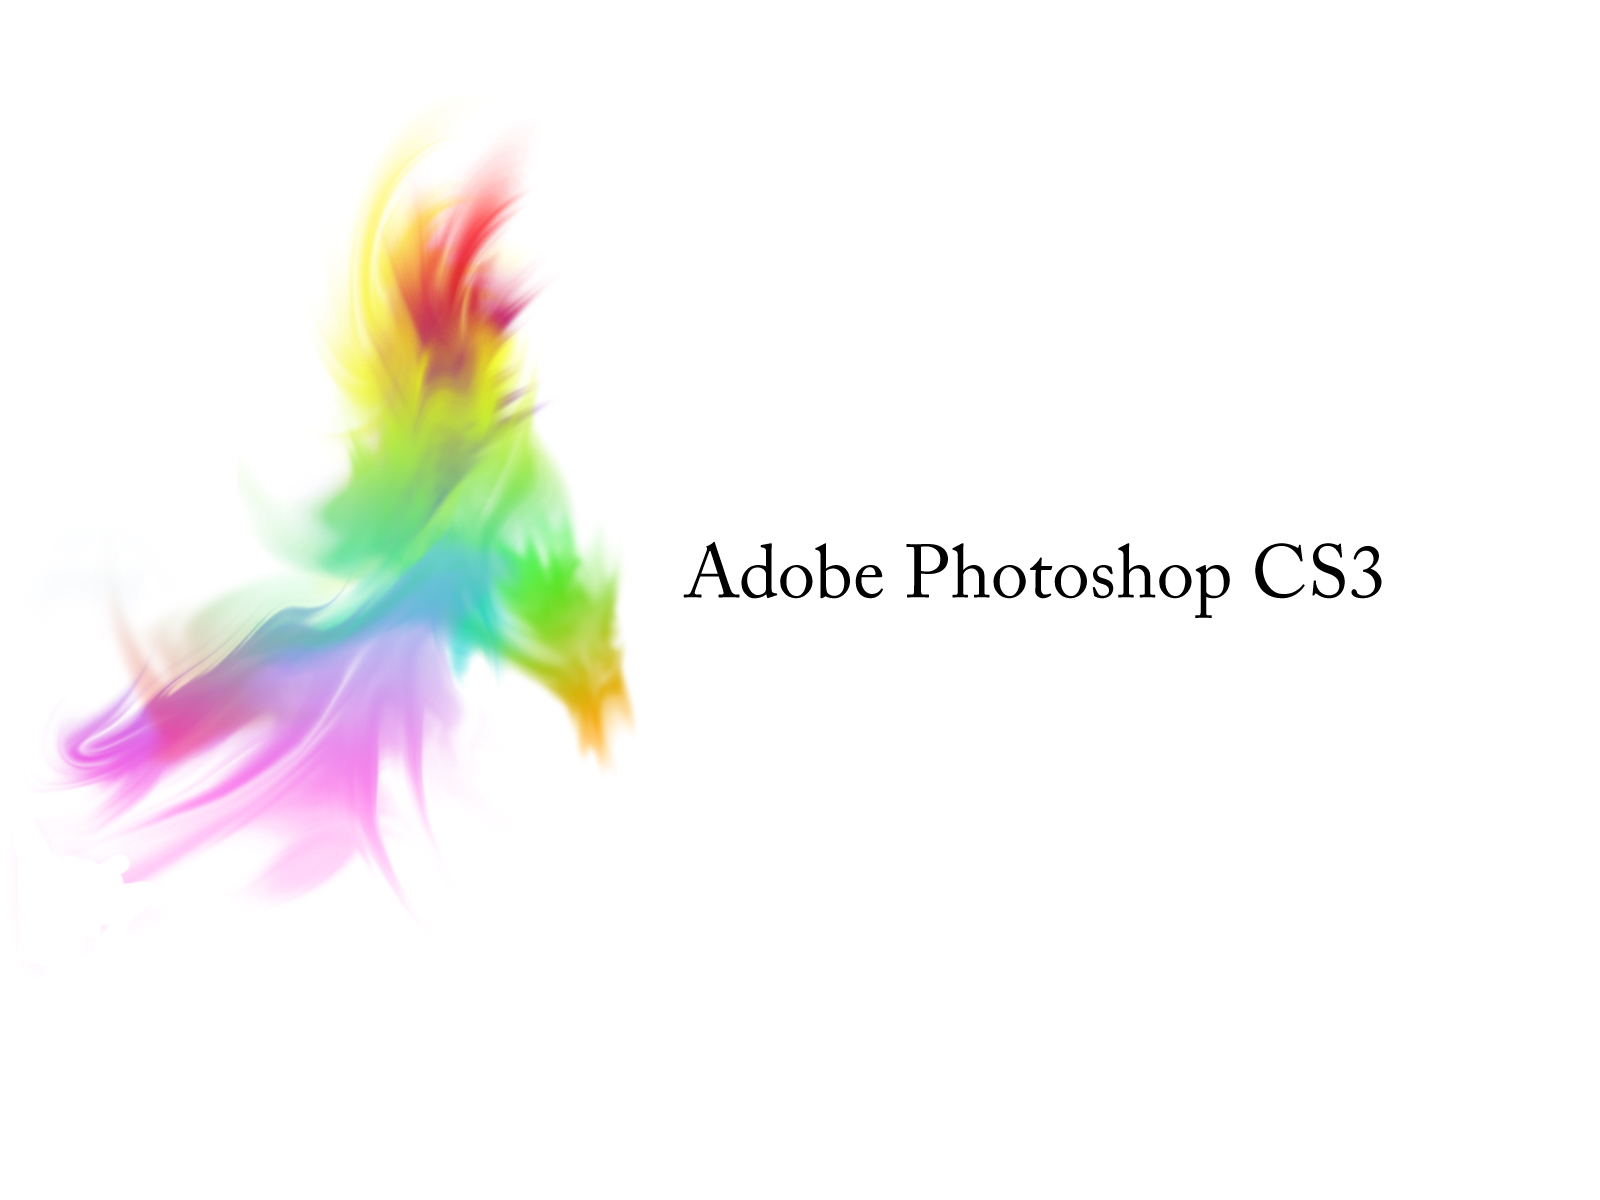 Adobe Photoshop CS3 Image